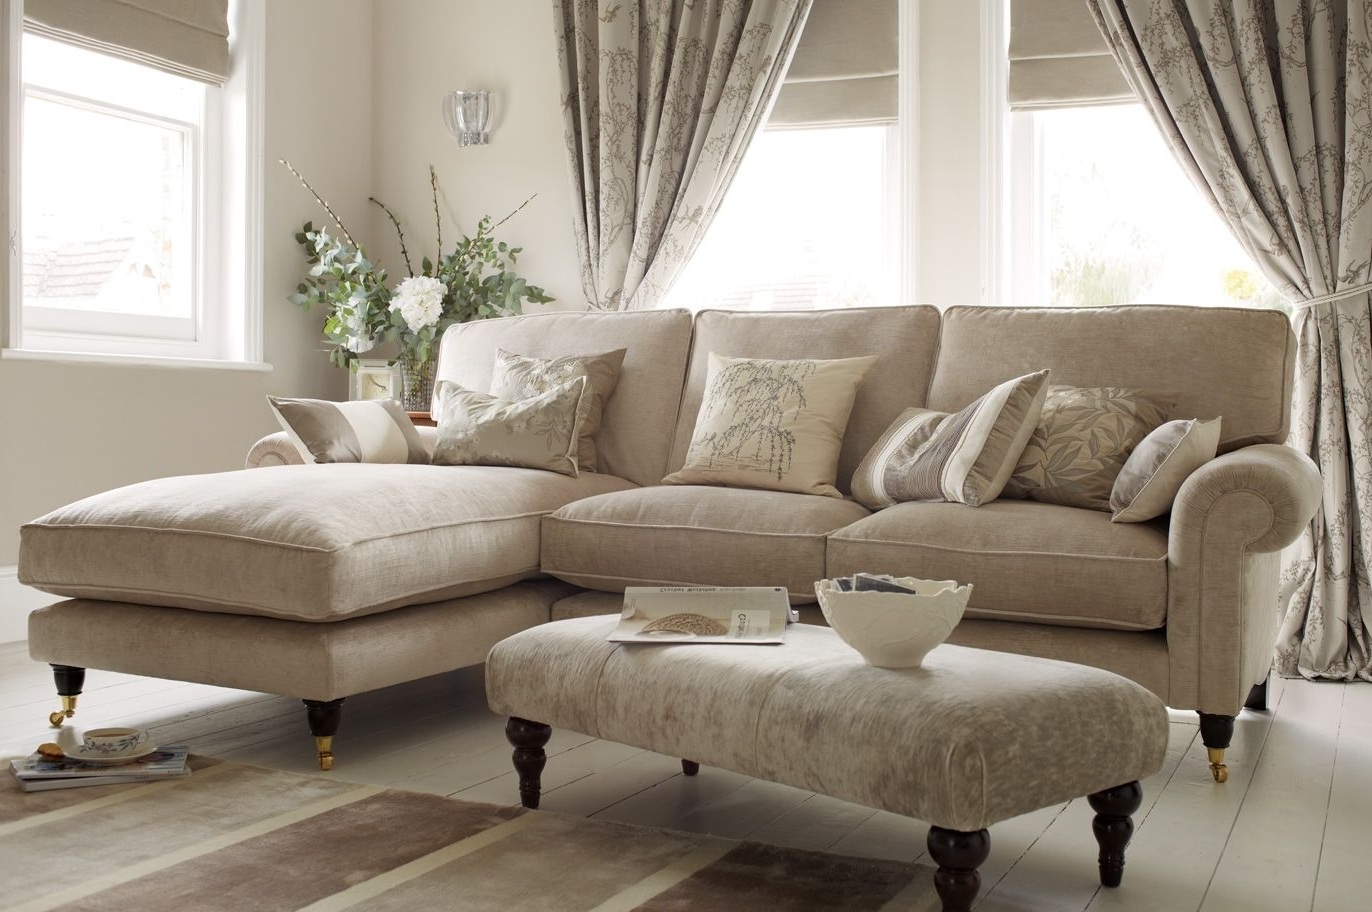 "Famous Kingston Sectional Sofas Pertaining To Kingston"" Sectional Sofa With Chaise In Sable Beige From Laura (View 2 of 20)"